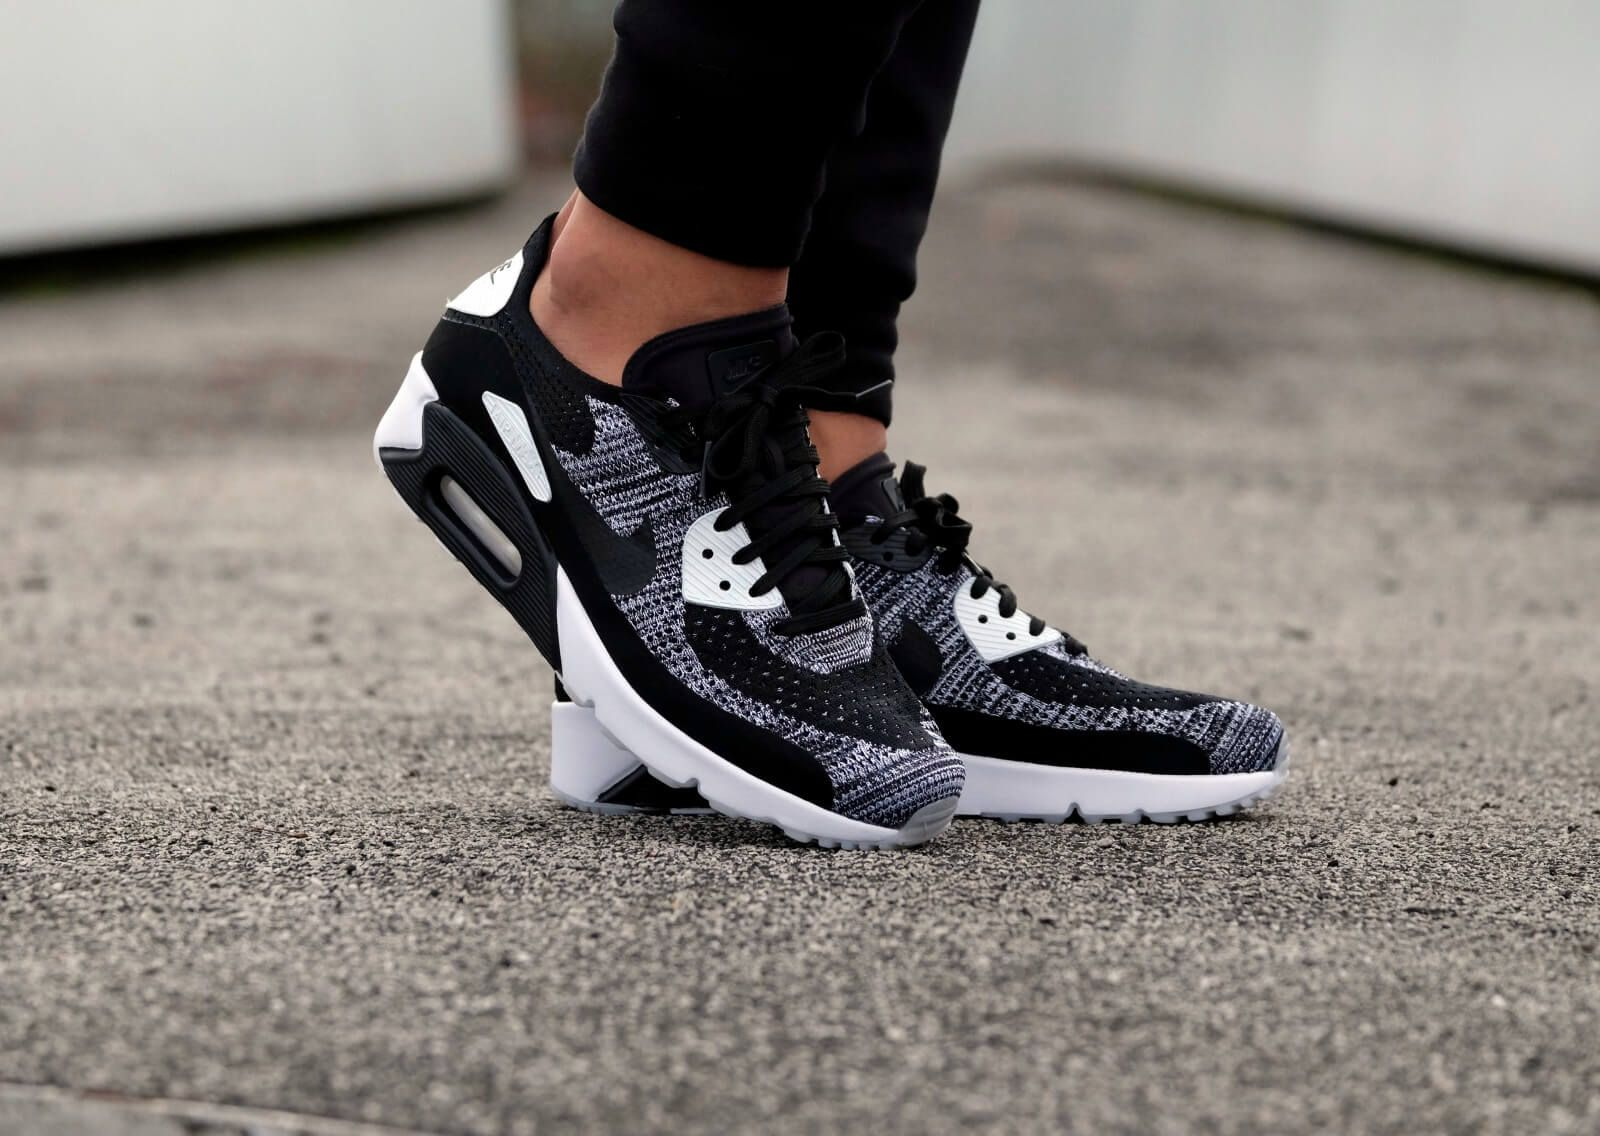 detailing 3bc9f 9a436 Nike Air Max 90 Ultra 2.0 Flyknit Mens Black White Cheap ...